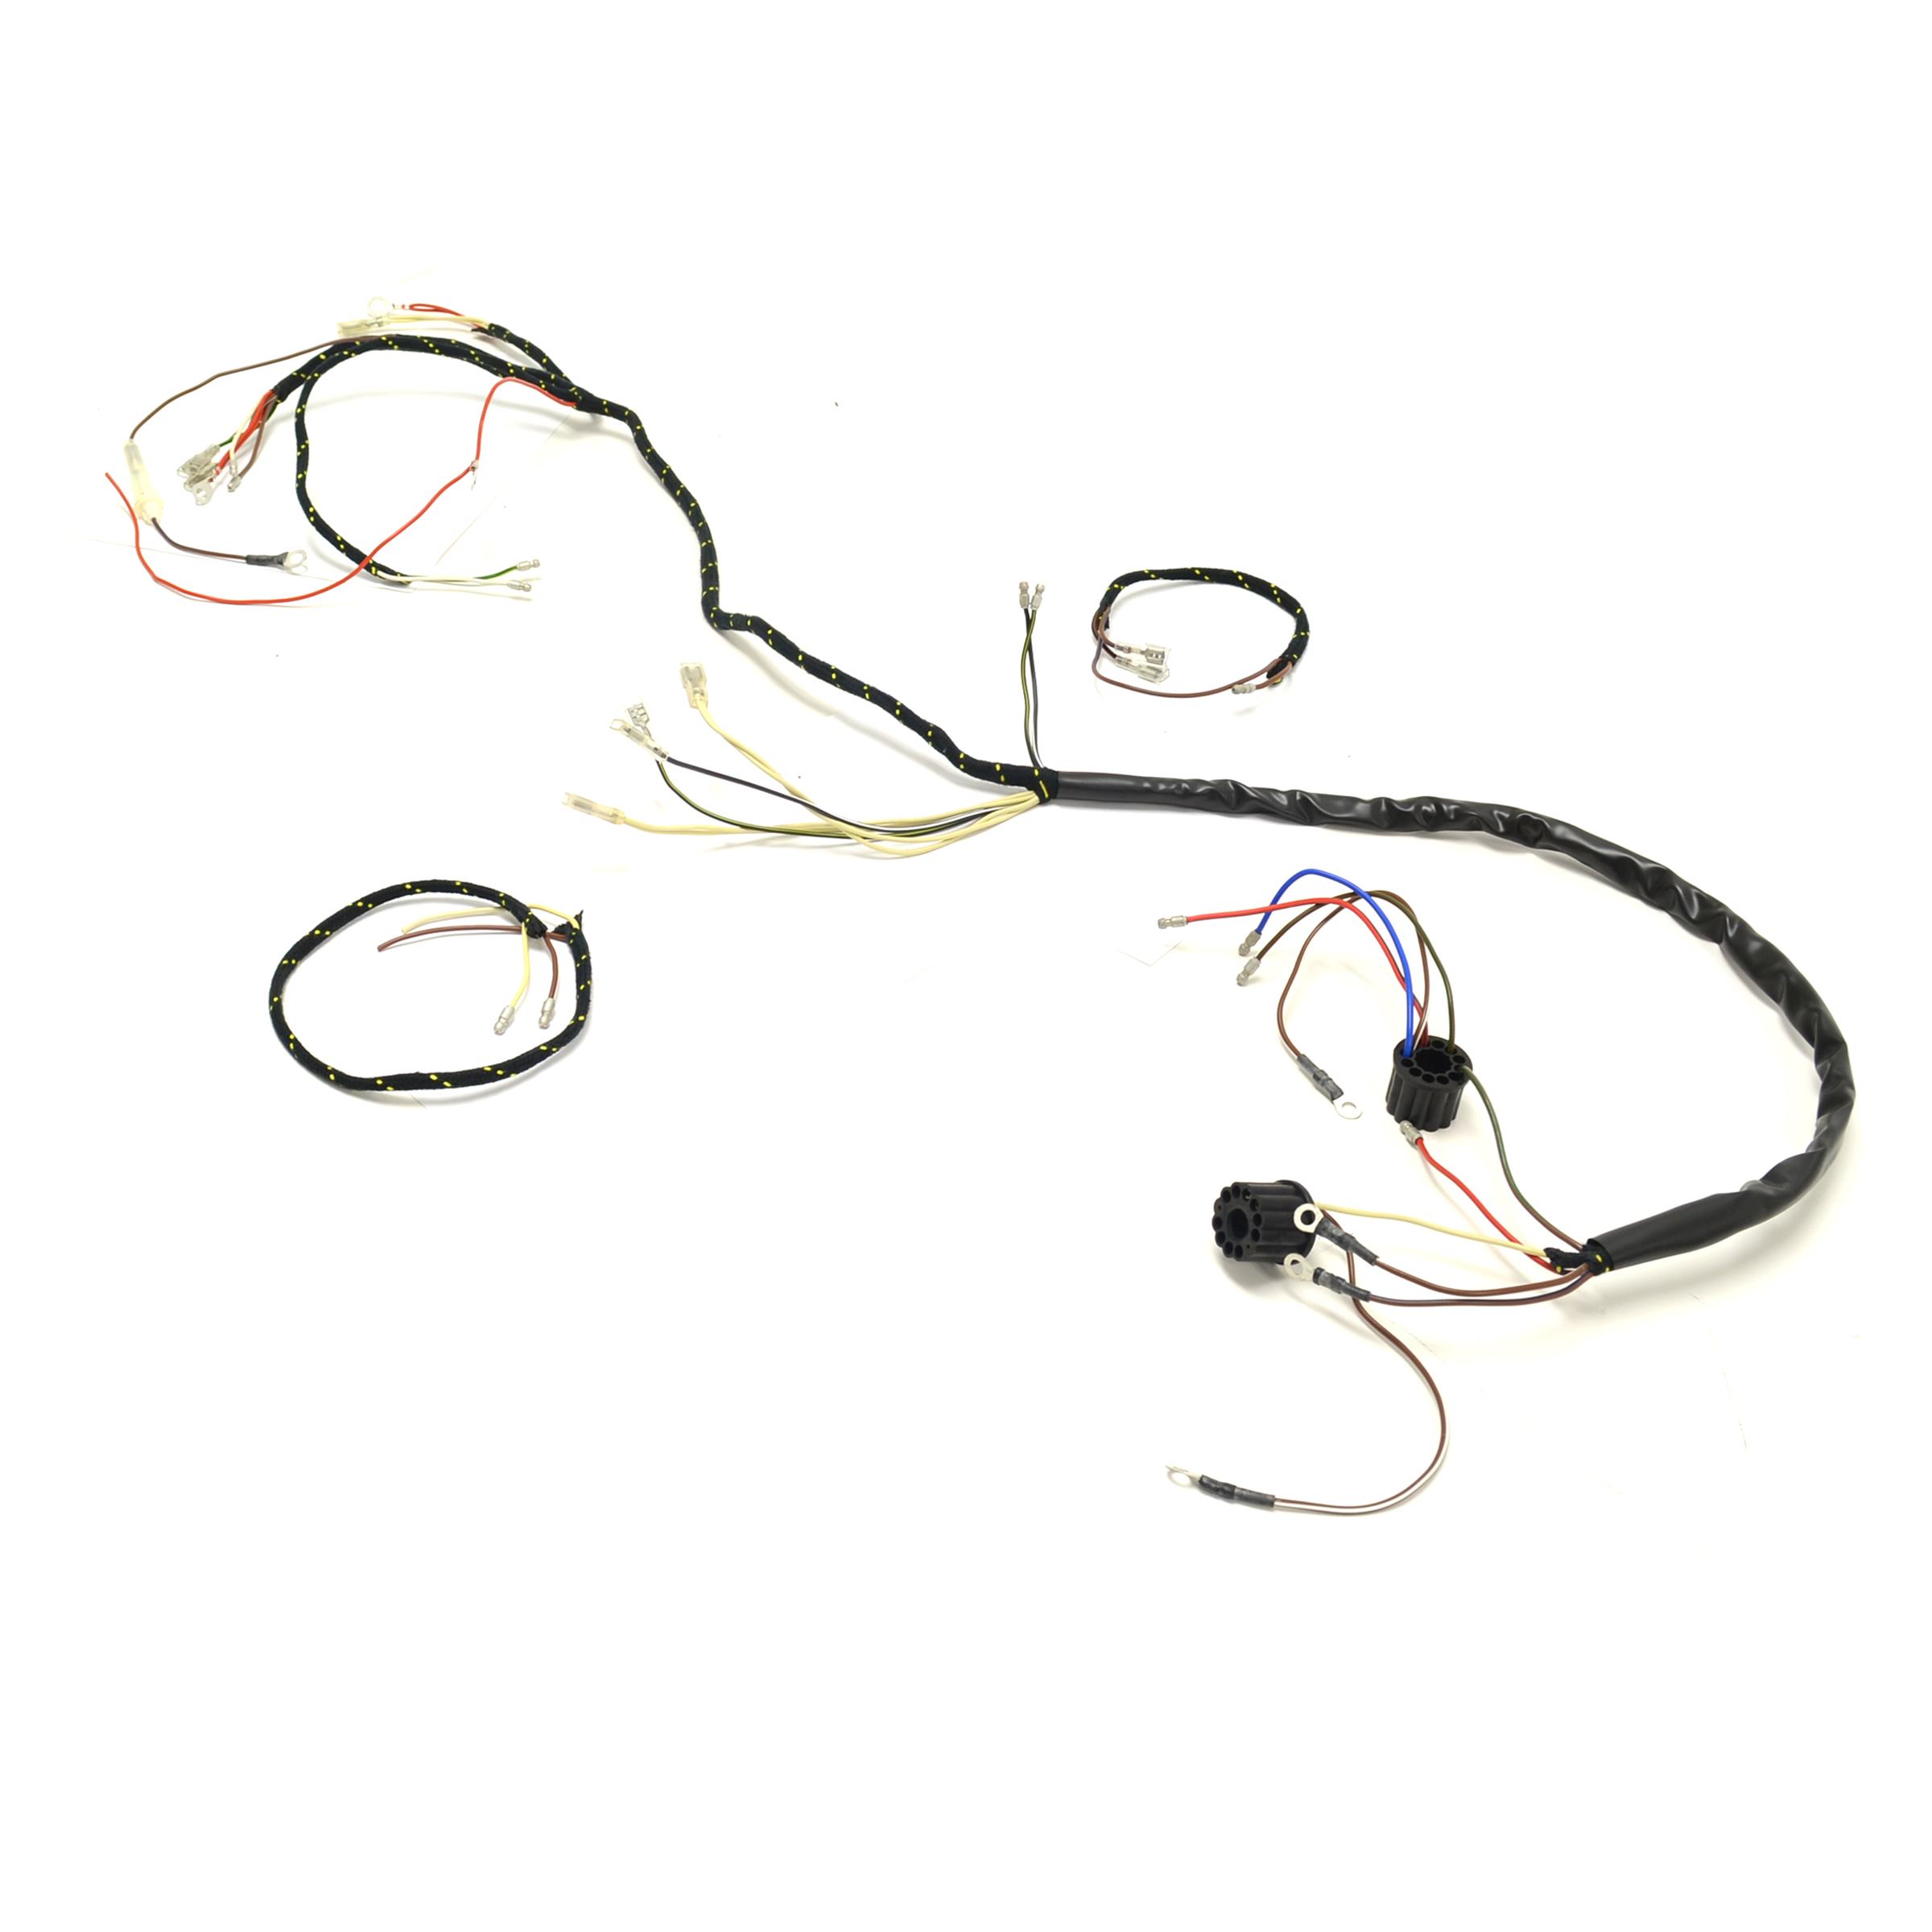 wiring harness kits for fog lights